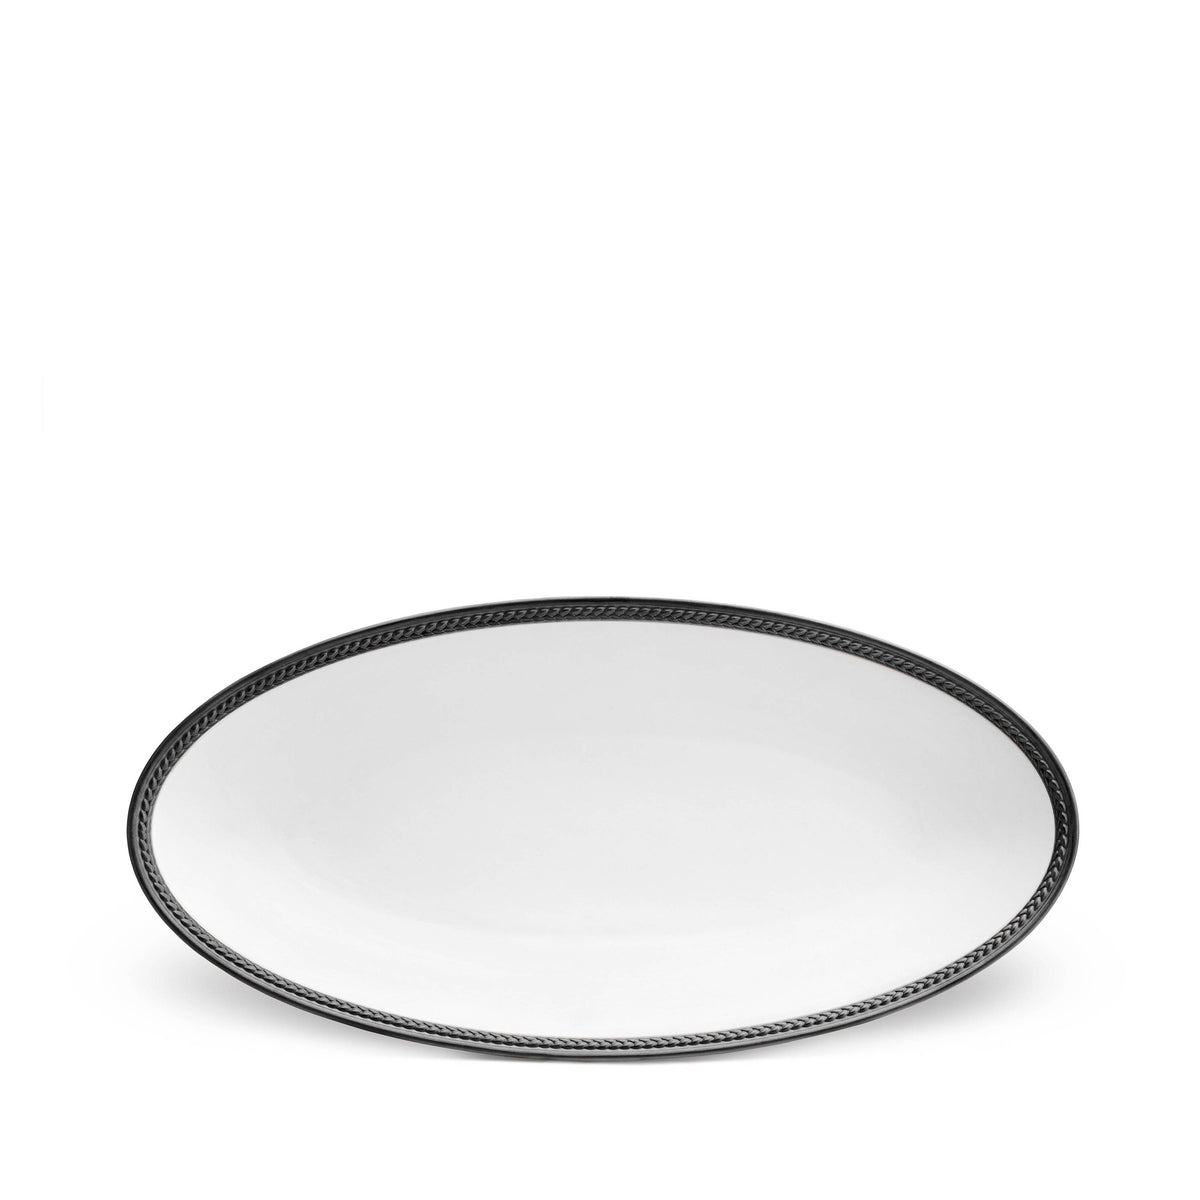 Soie Tressée Oval Platter - Small - Black